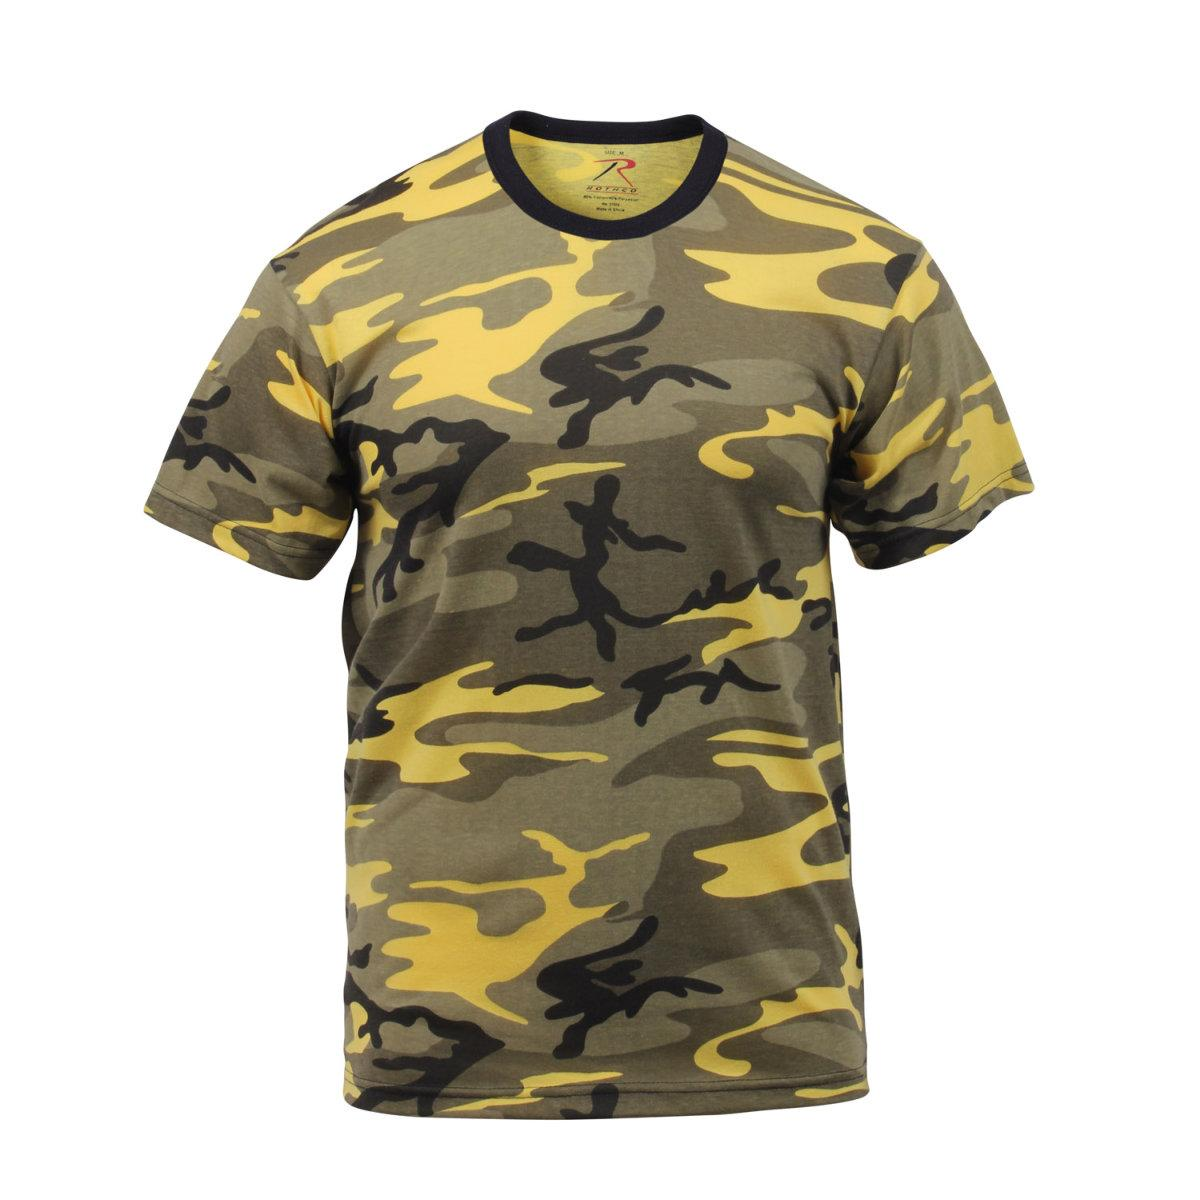 Stinger Yellow Camouflage T-Shirt